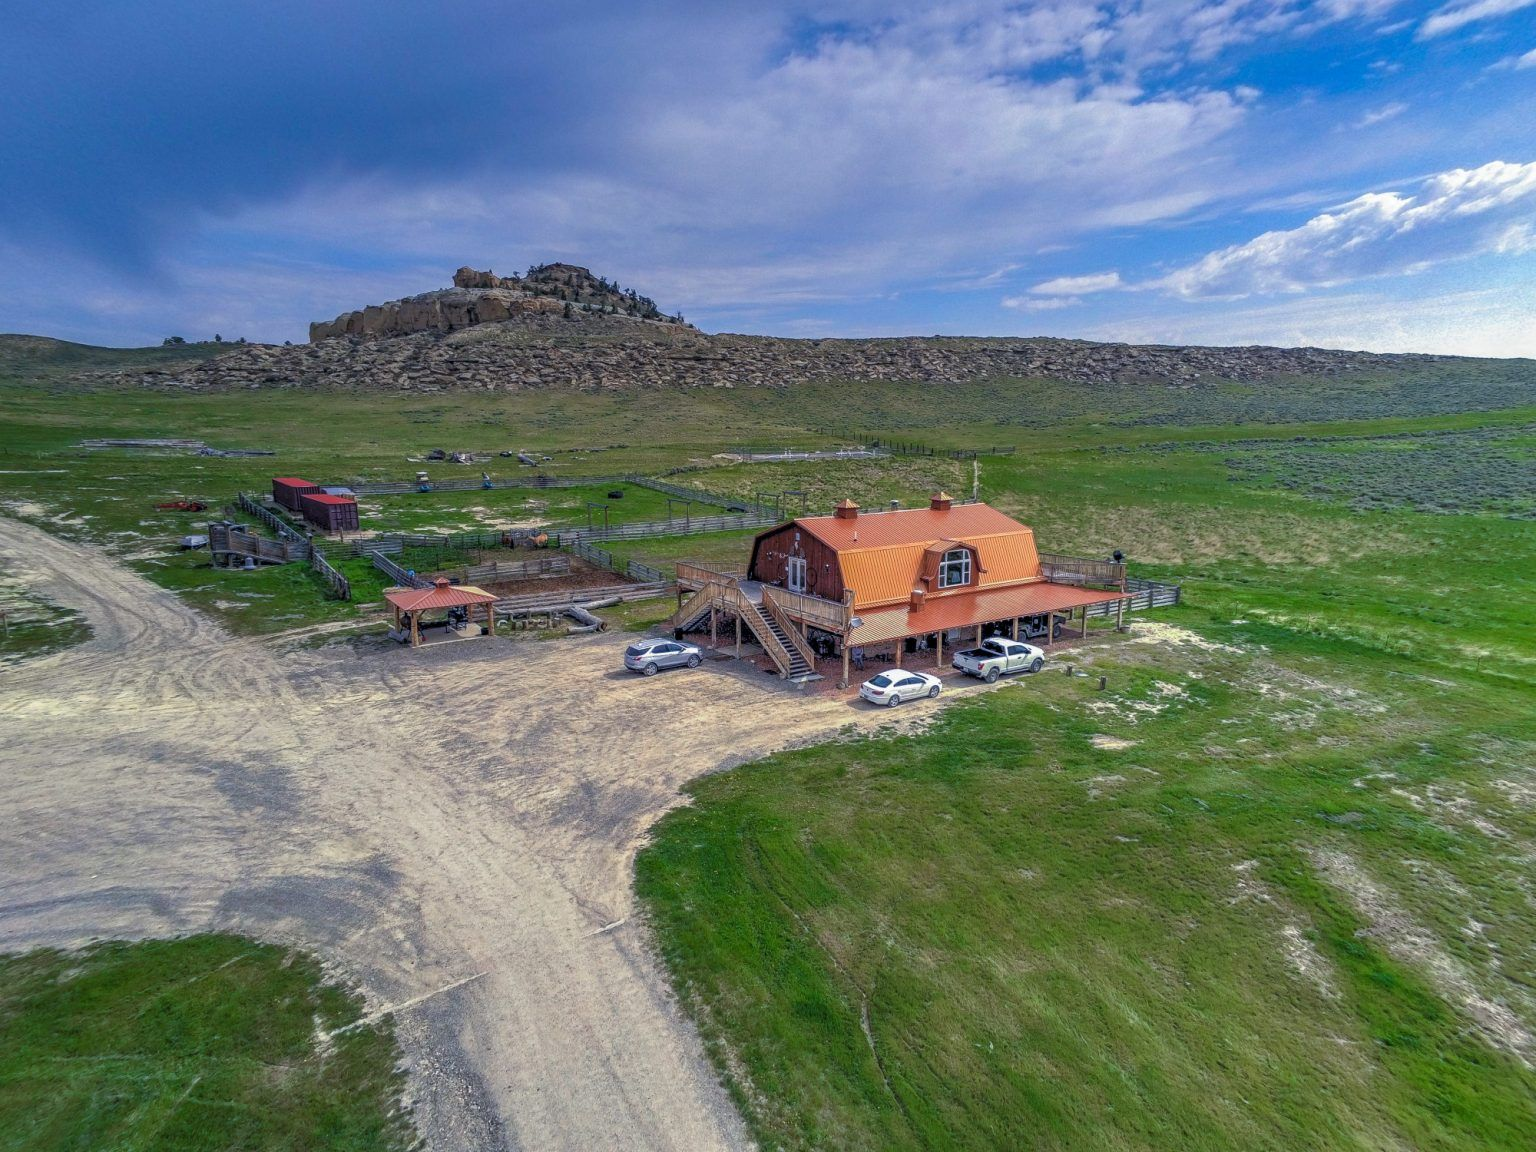 Kanye West S Ranch House In Wyoming In 2020 Kim Kardashian Kanye West Kim Kardashian And Kanye New Kanye